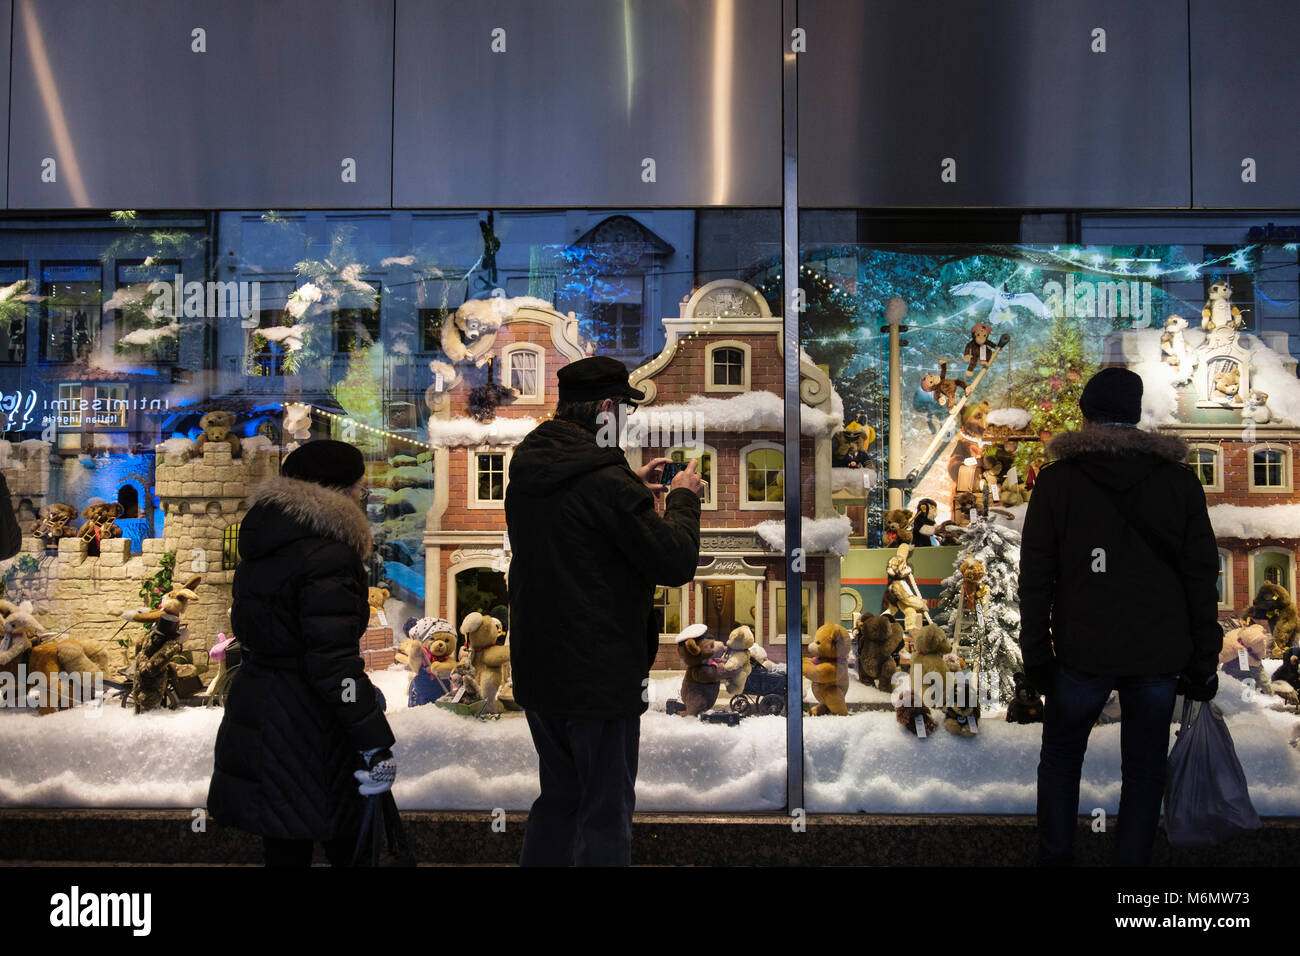 People looking at a christmas display winter scene in department store Galeria Kaufhof shop window. Munich, Bavaria, - Stock Image